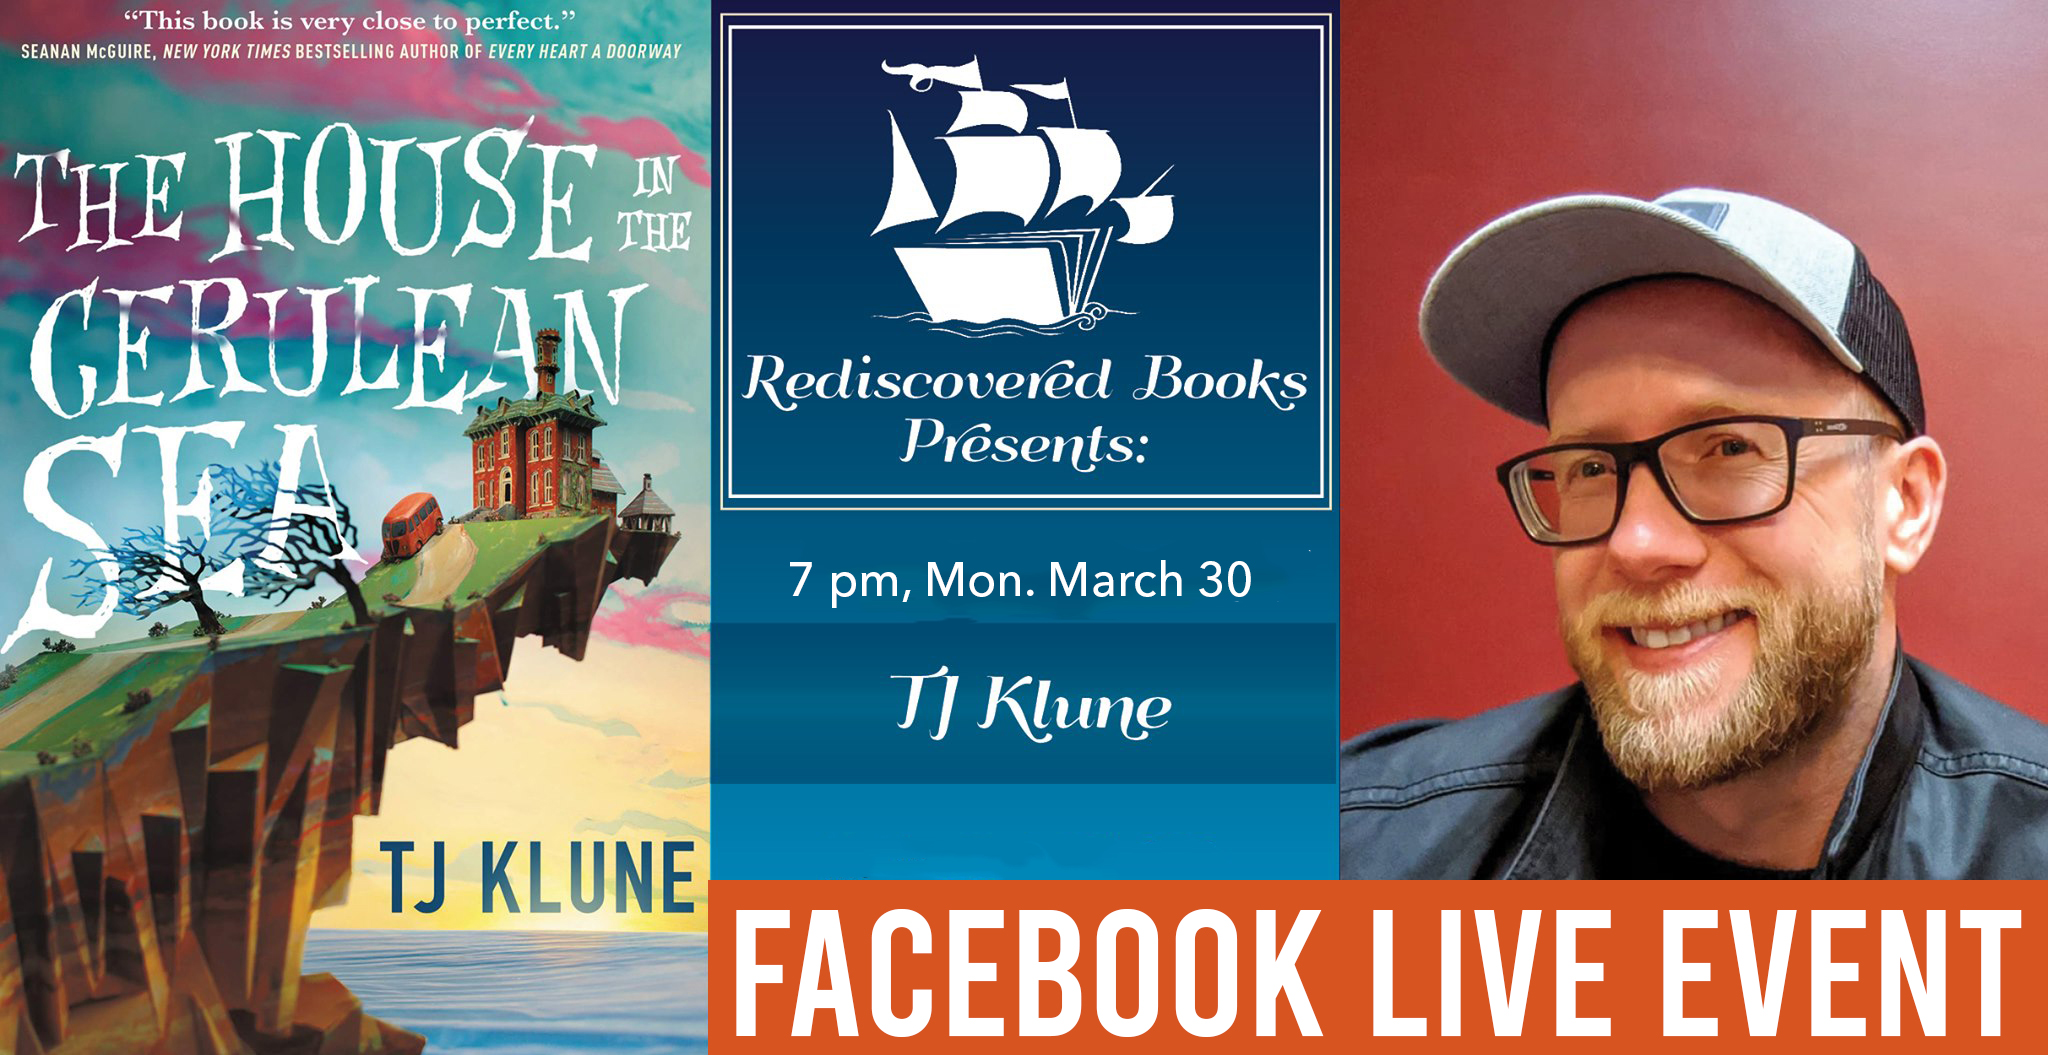 Facebook Live event with TJ KLUNE